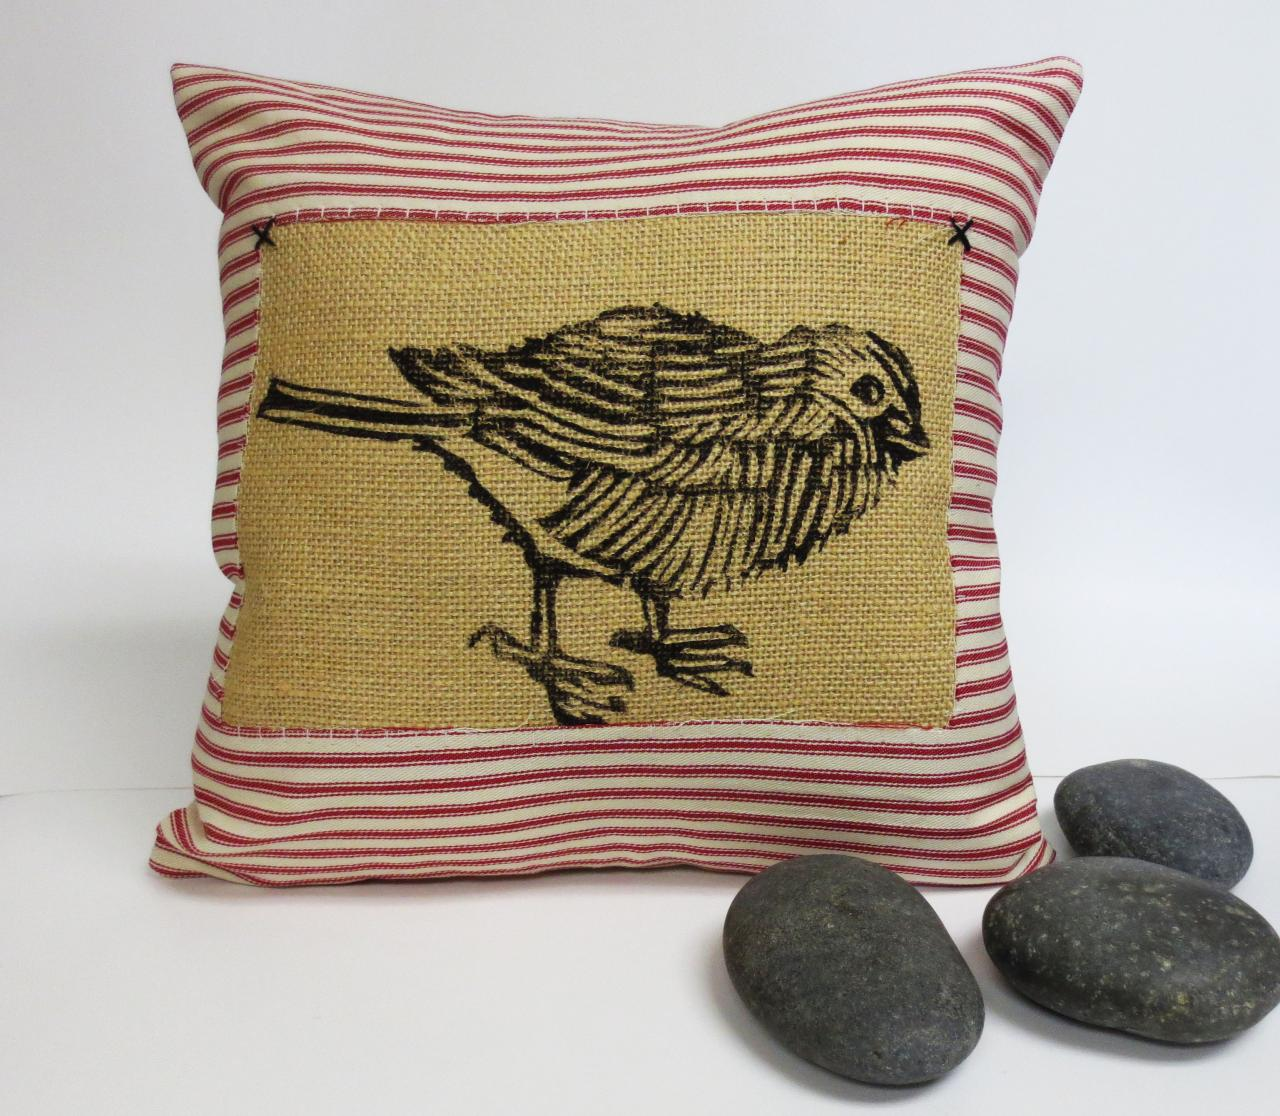 Red Ticking Stripe Pillow Cover with Sparrow Bird Block Print over Burlap - Your Choice of Ticking Stripe